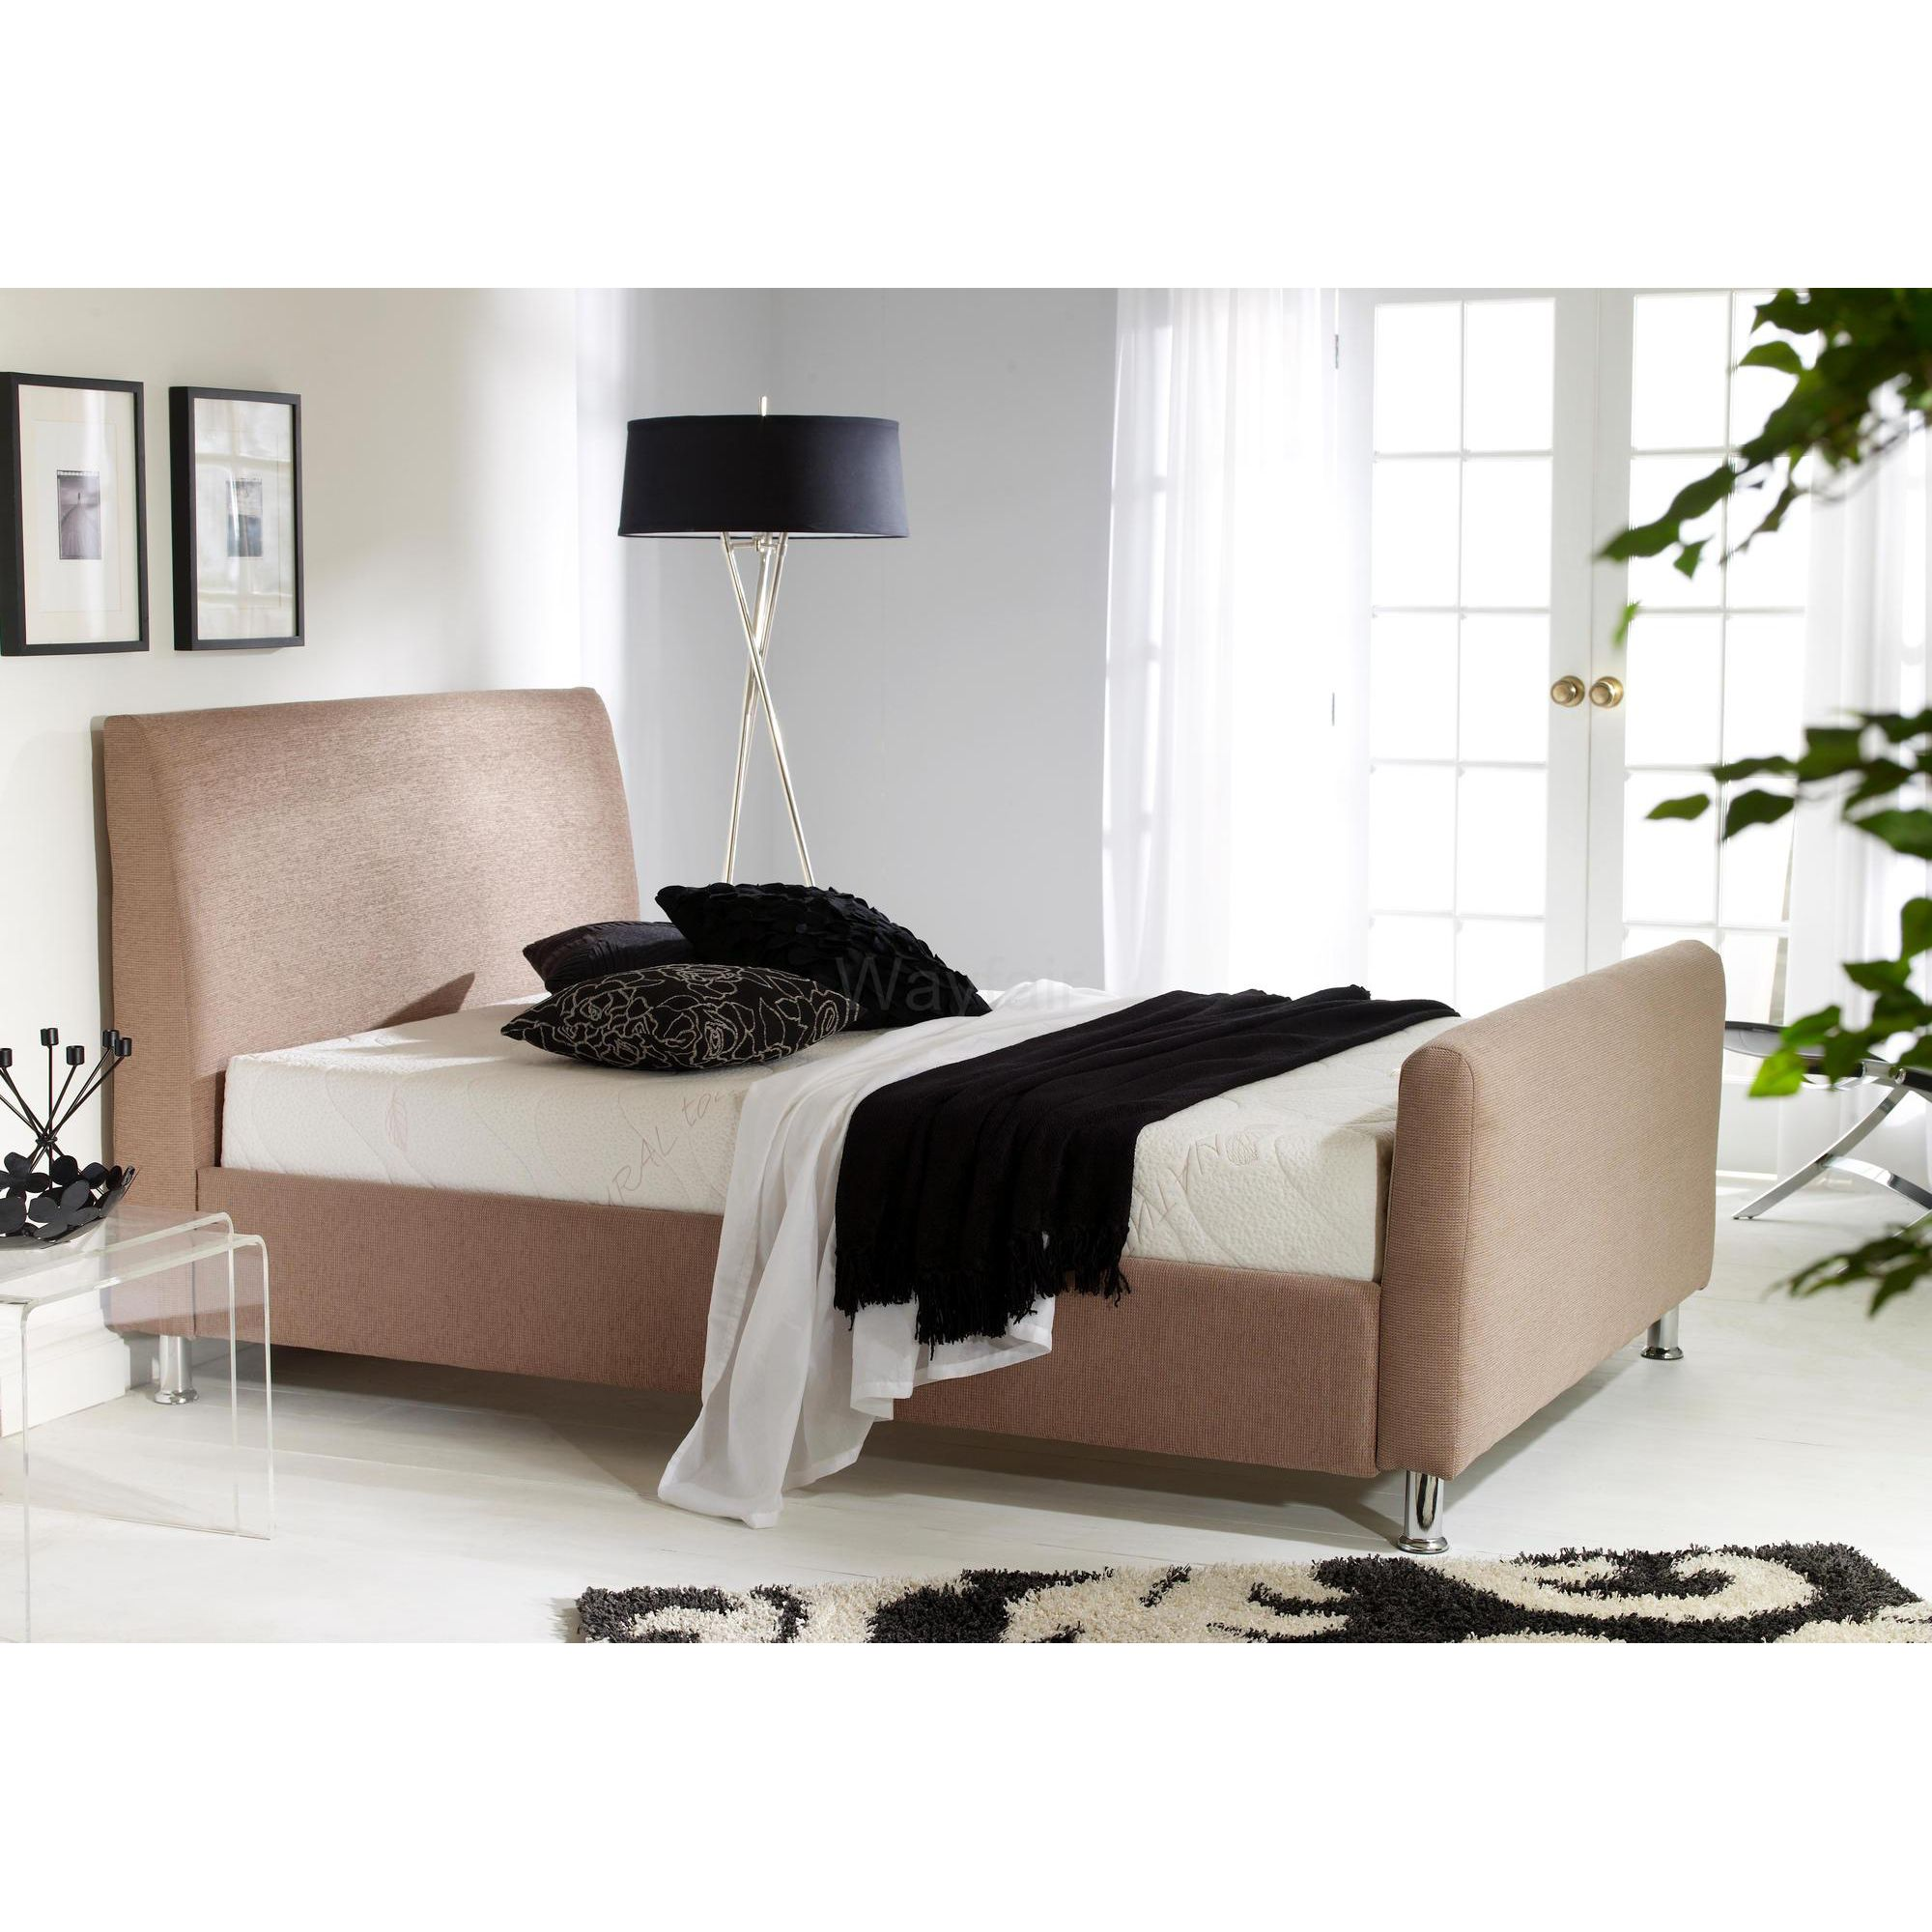 MA Living Kamli Bed - Eastwood Chocolate - Single at Tesco Direct